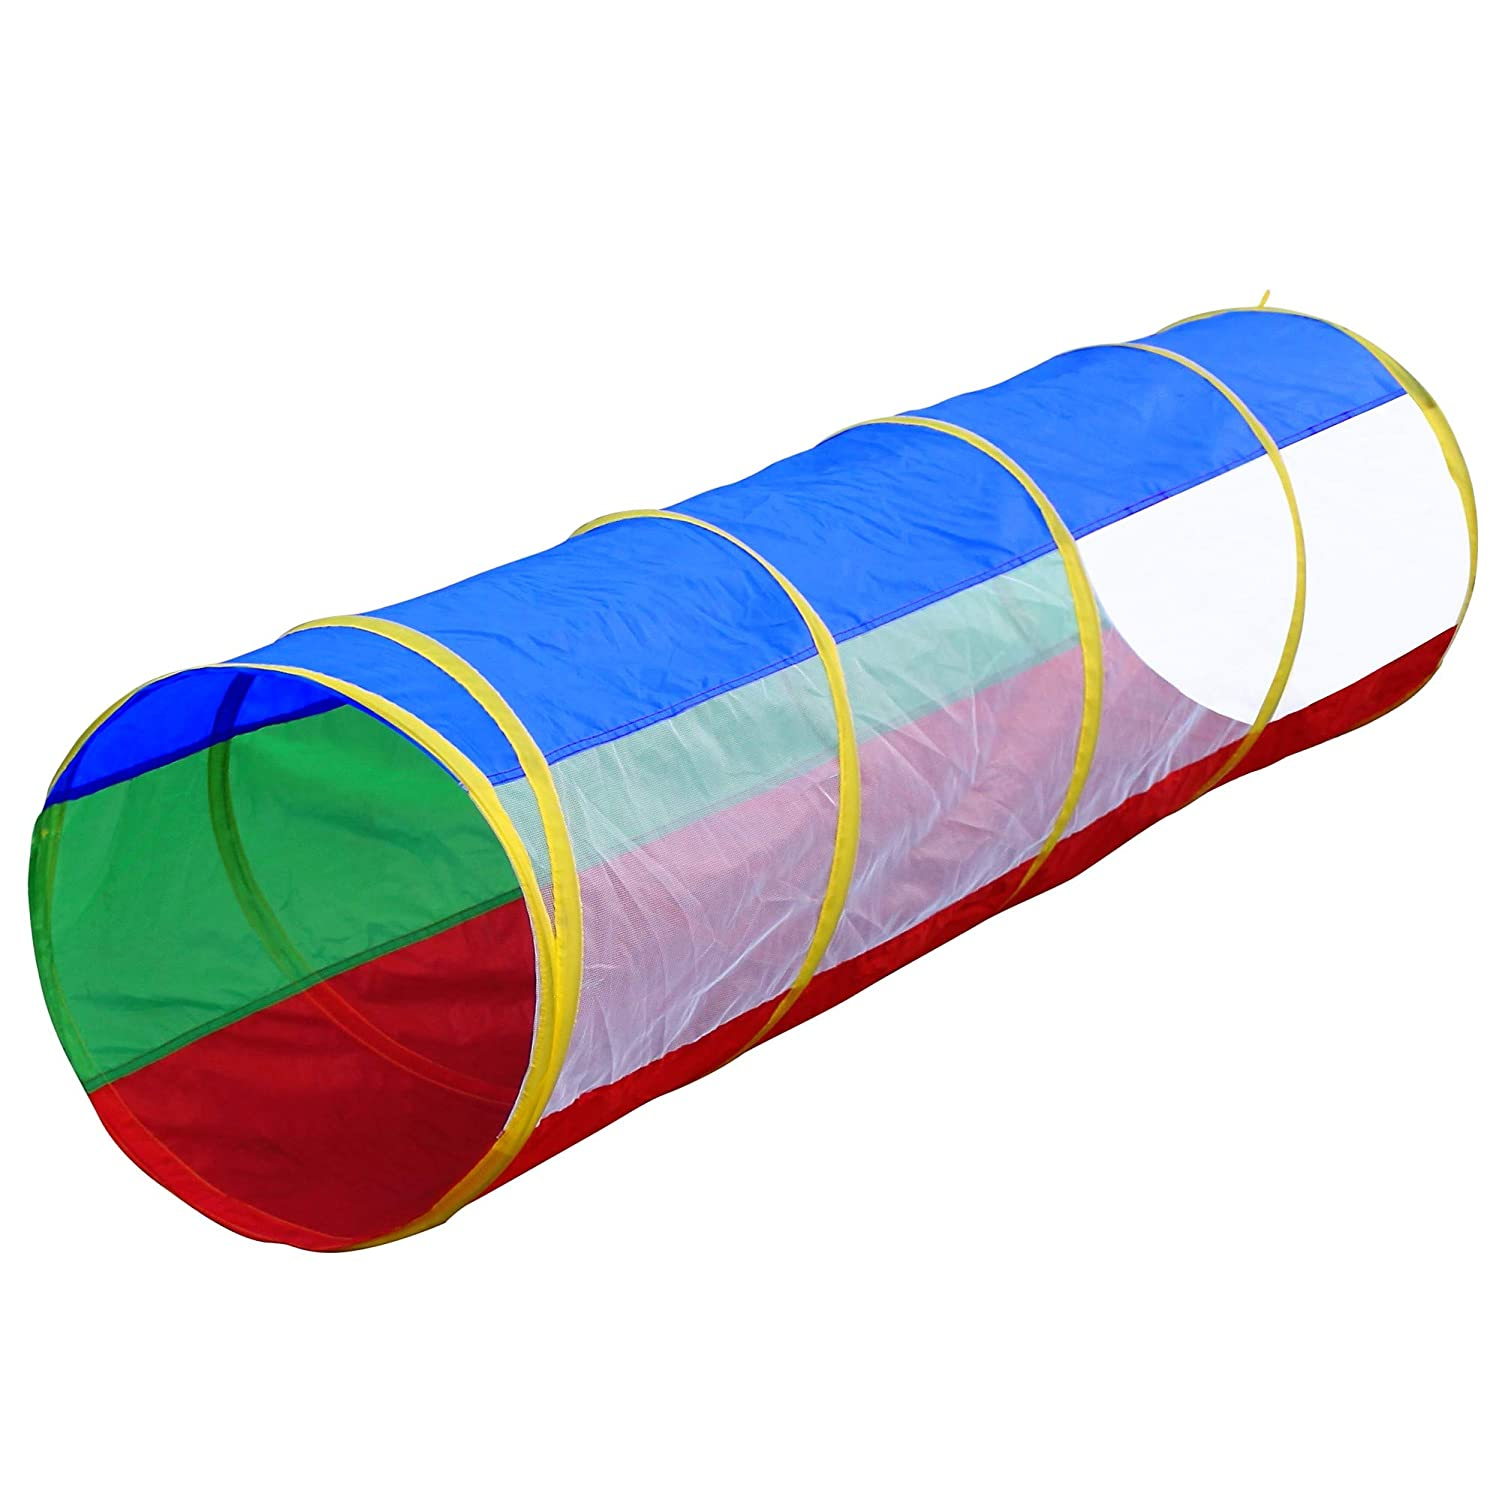 Hide N Side Kids 6ft Crawl Through Play Tunnel Toy, Pop up Tunnel for Kids Toddlers Babies Infants & Children Gift Indoor & Outdoor Tube Hide-n-Side